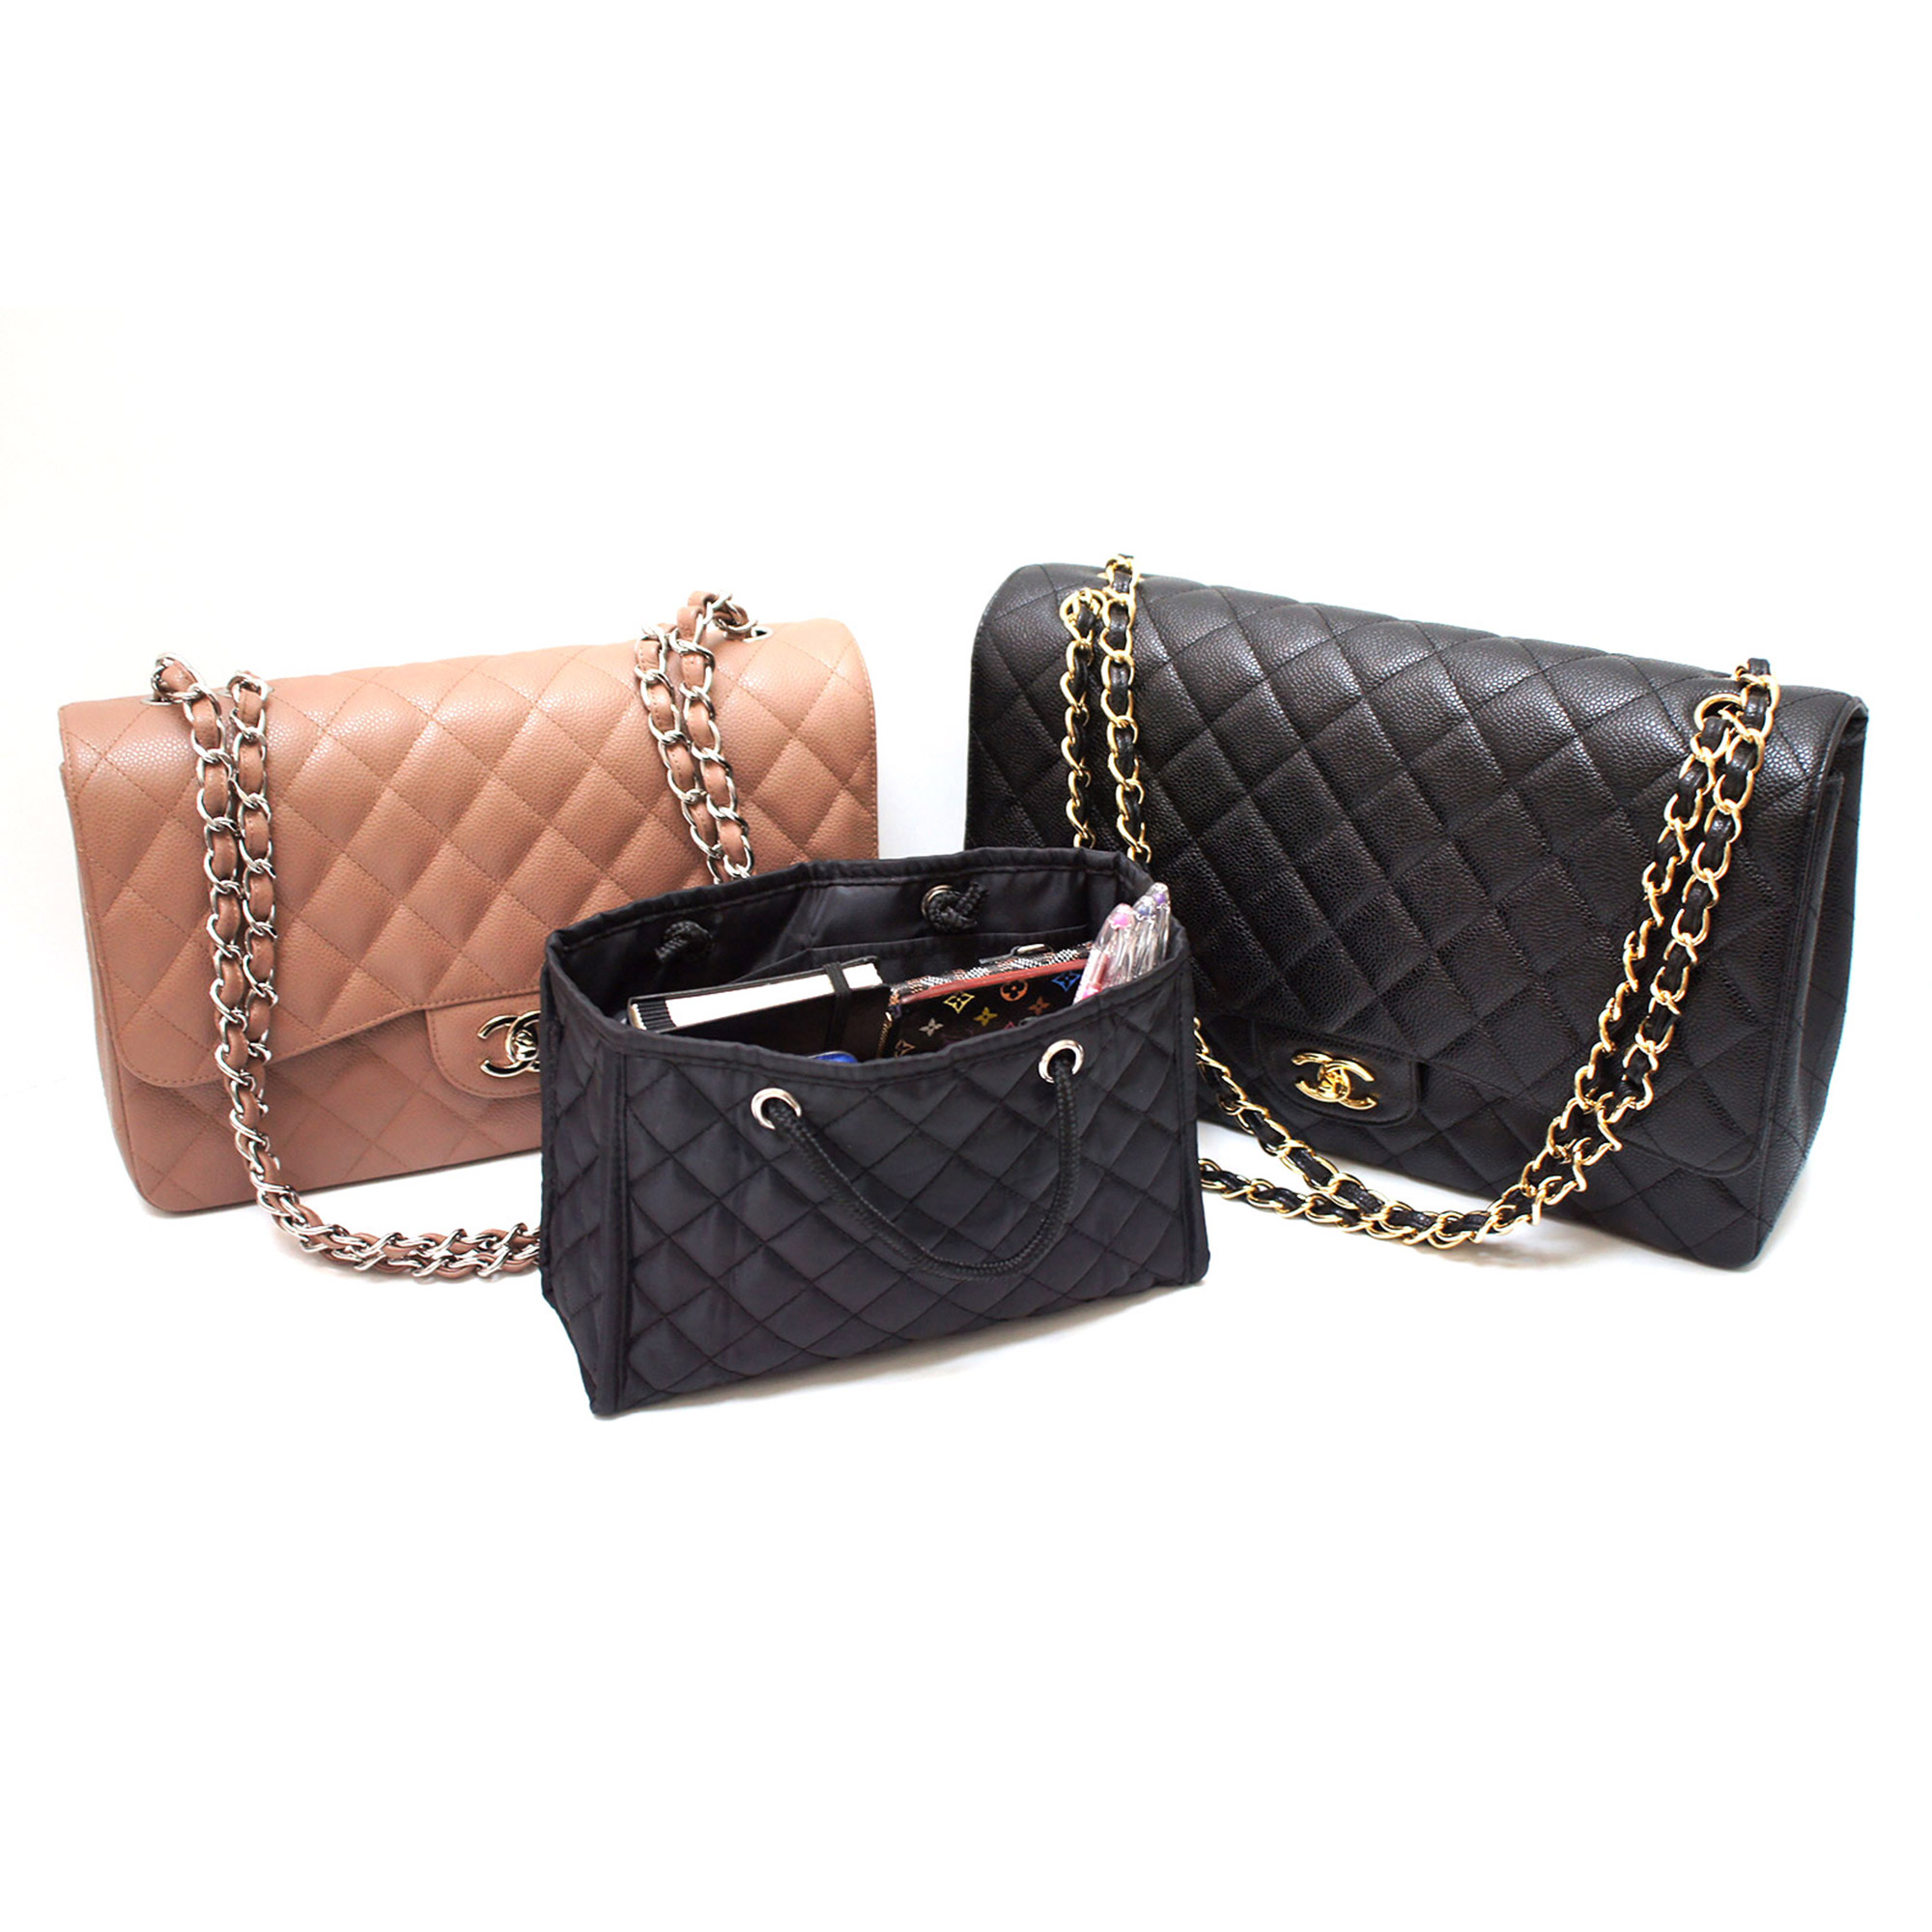 CHIC QUILTED ZOE SMALL HANDBAG ORGANIZER BASE INSERT FITS YOUR - Lawn care invoice template free chanel online store